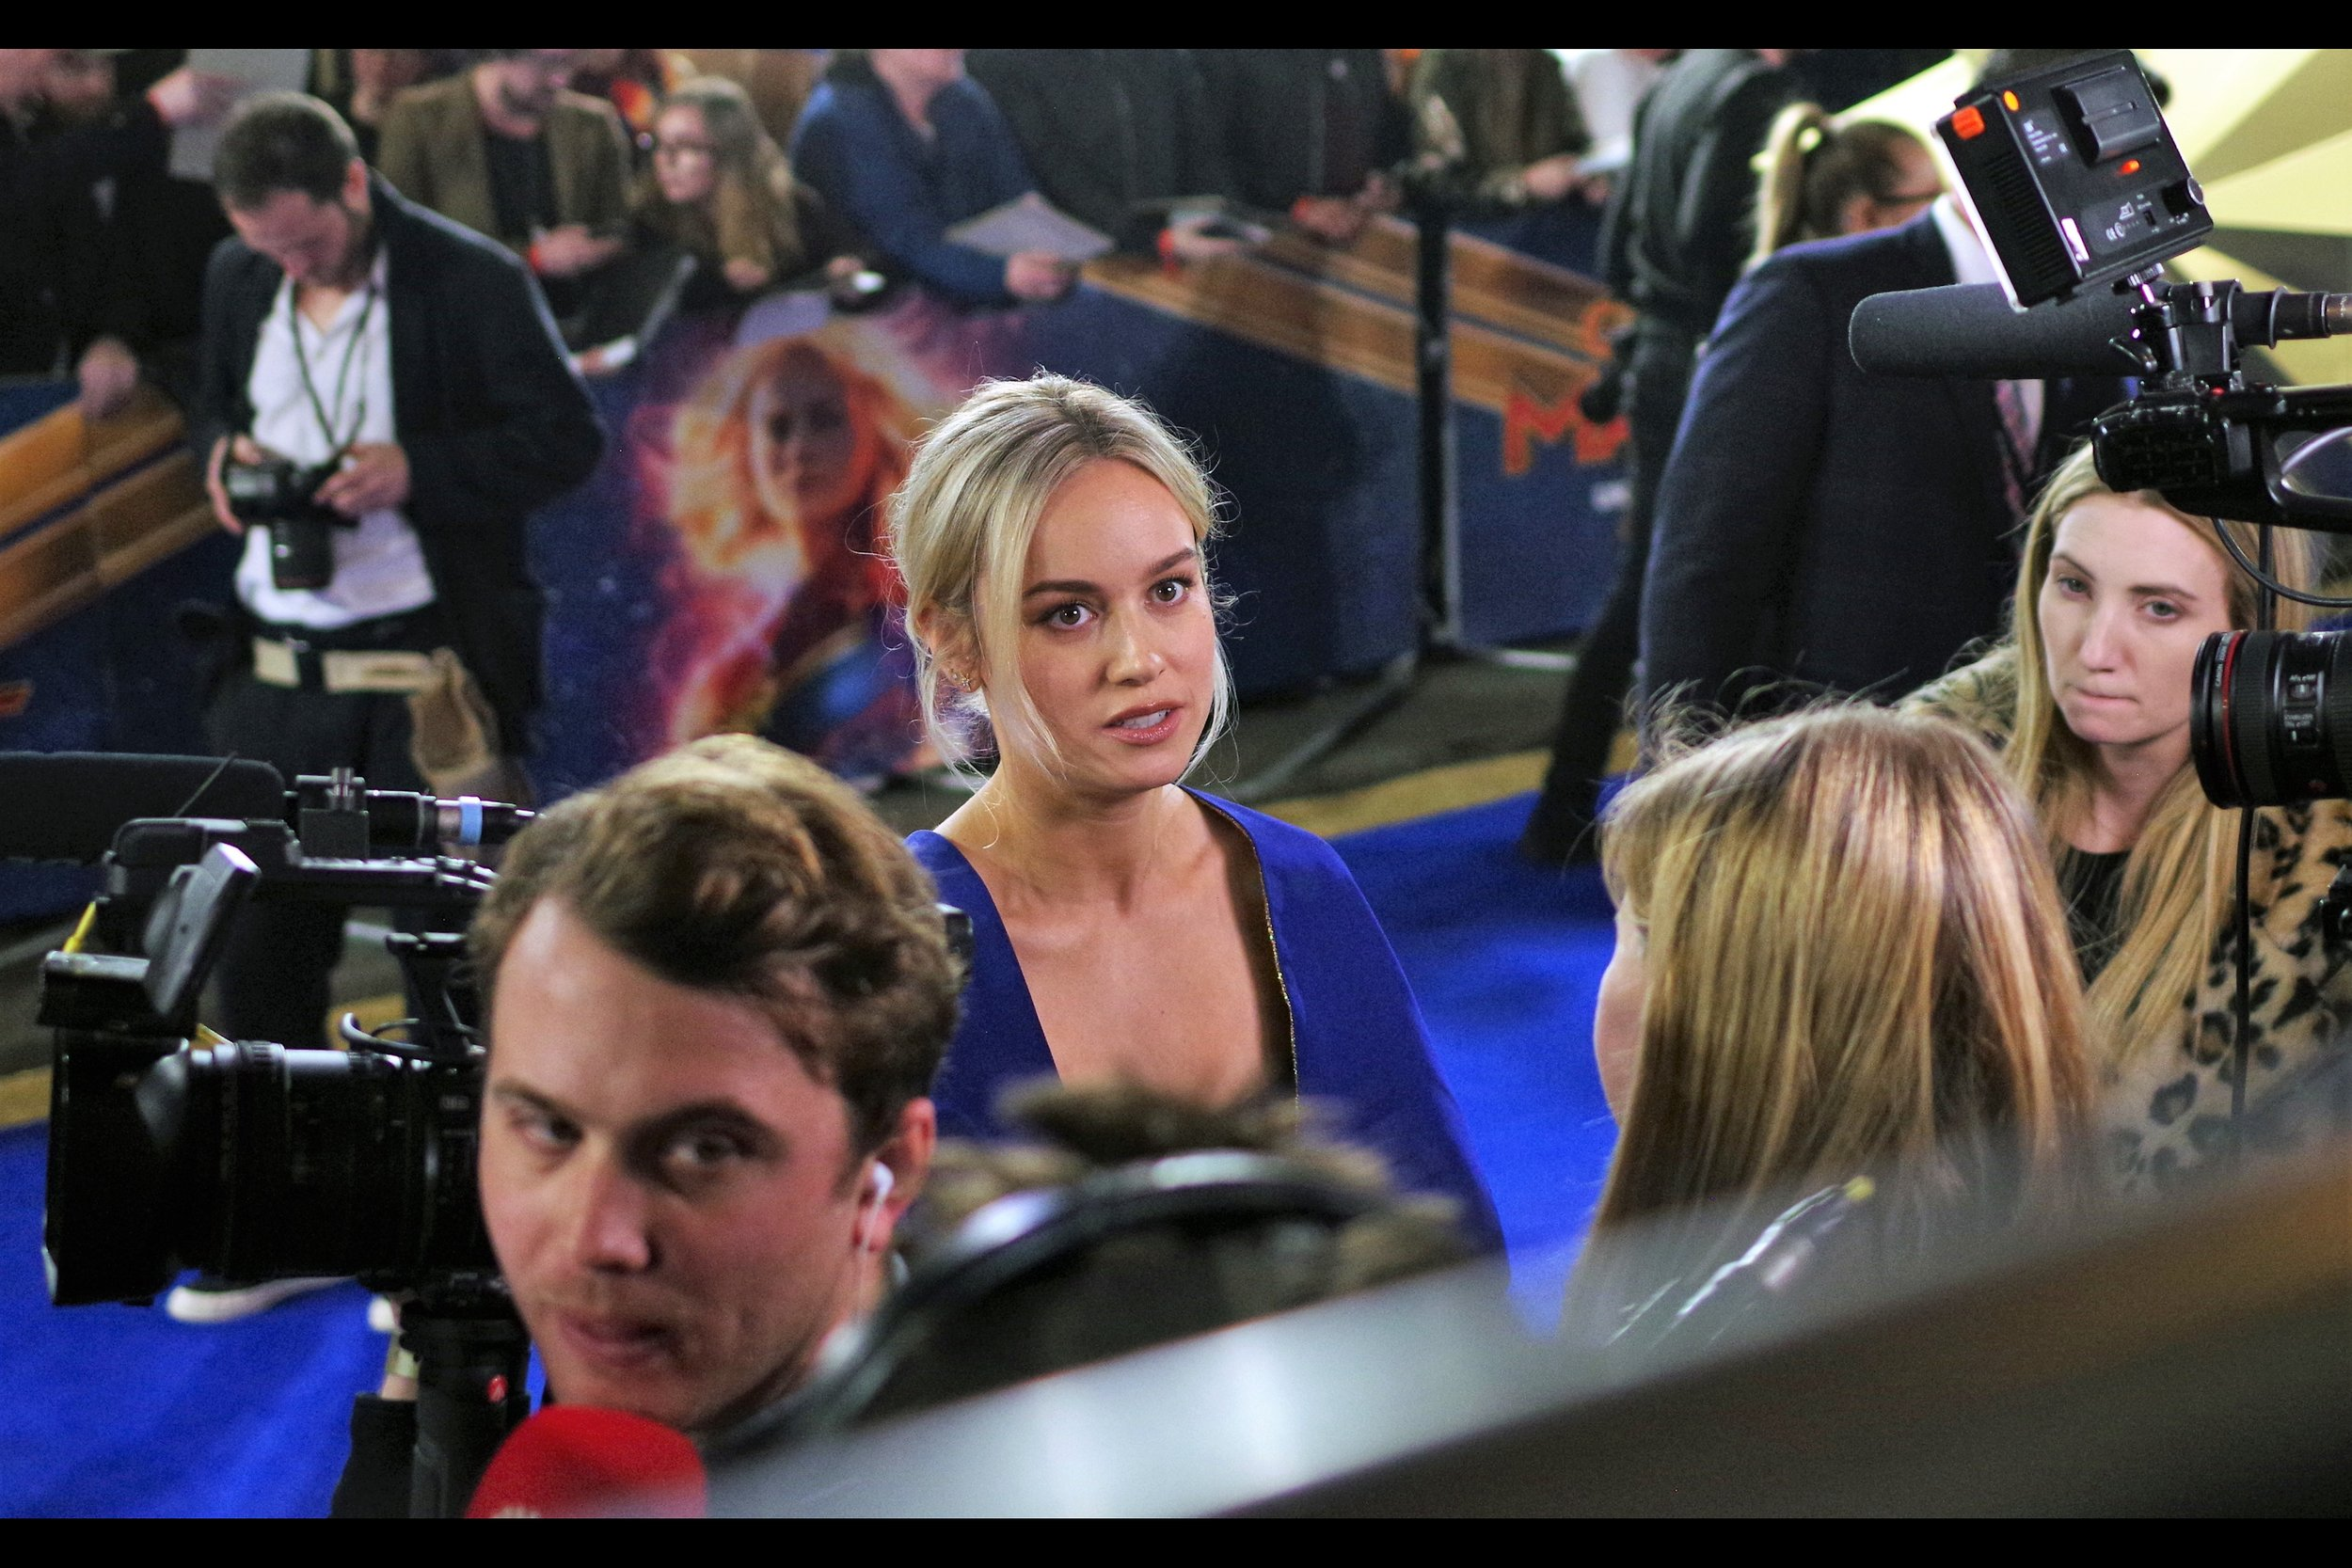 So basically the only thing wrong with this photo of Brie Larson's face sharp in the foreground with the face of Captain Marvel in the background is… everything. There's a dude looking over his shoulder, a guy in a white polo shirt in the background chimping shots on his DSLR, leopard-print lady looking worriedly at the reporter whose hair takes up more photographing real estate than Brie Larson's face. That's photography.